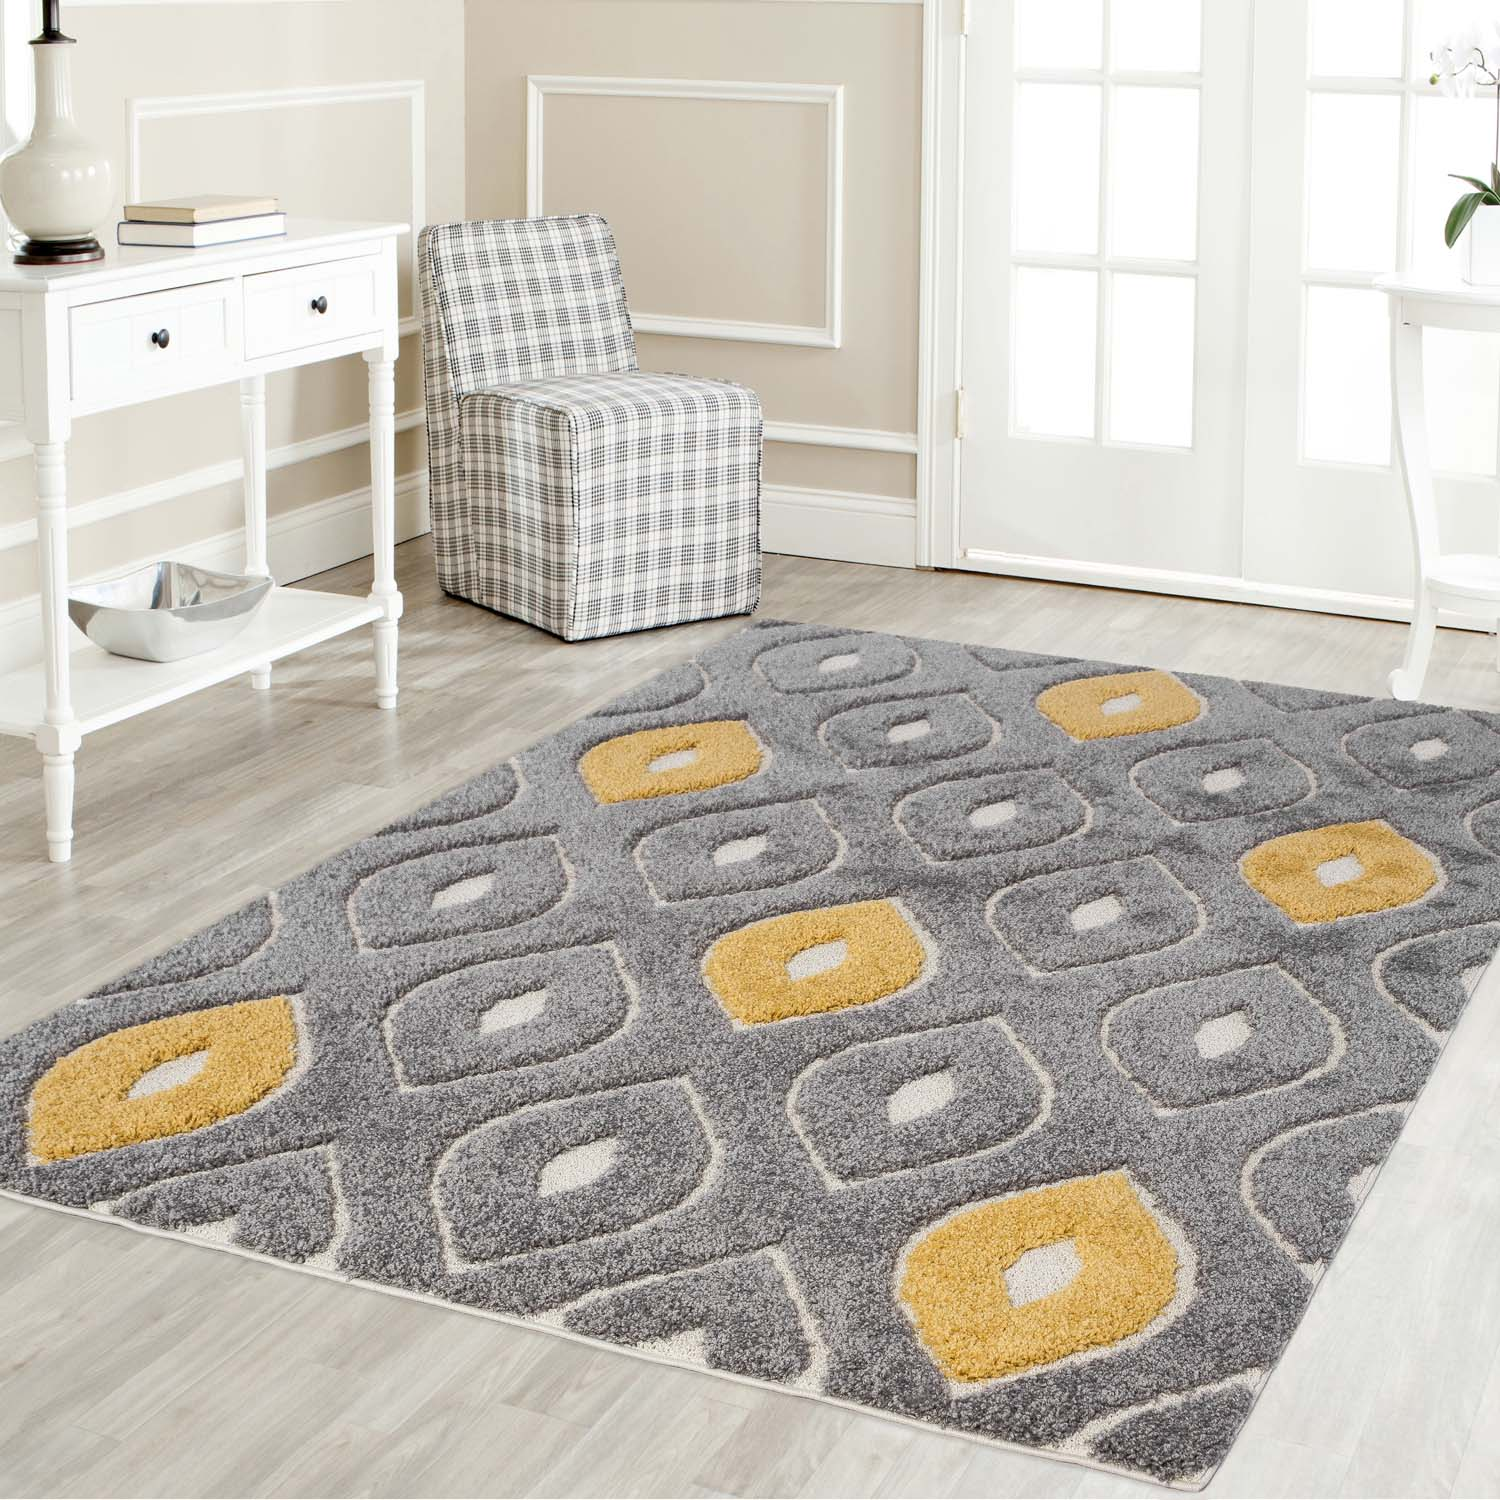 Picture of: Mod Arte Platinum Shag Collection Plush Area Rug Modern Contemporary Style Grey Yellow 3 9 X5 2 Shoprhc